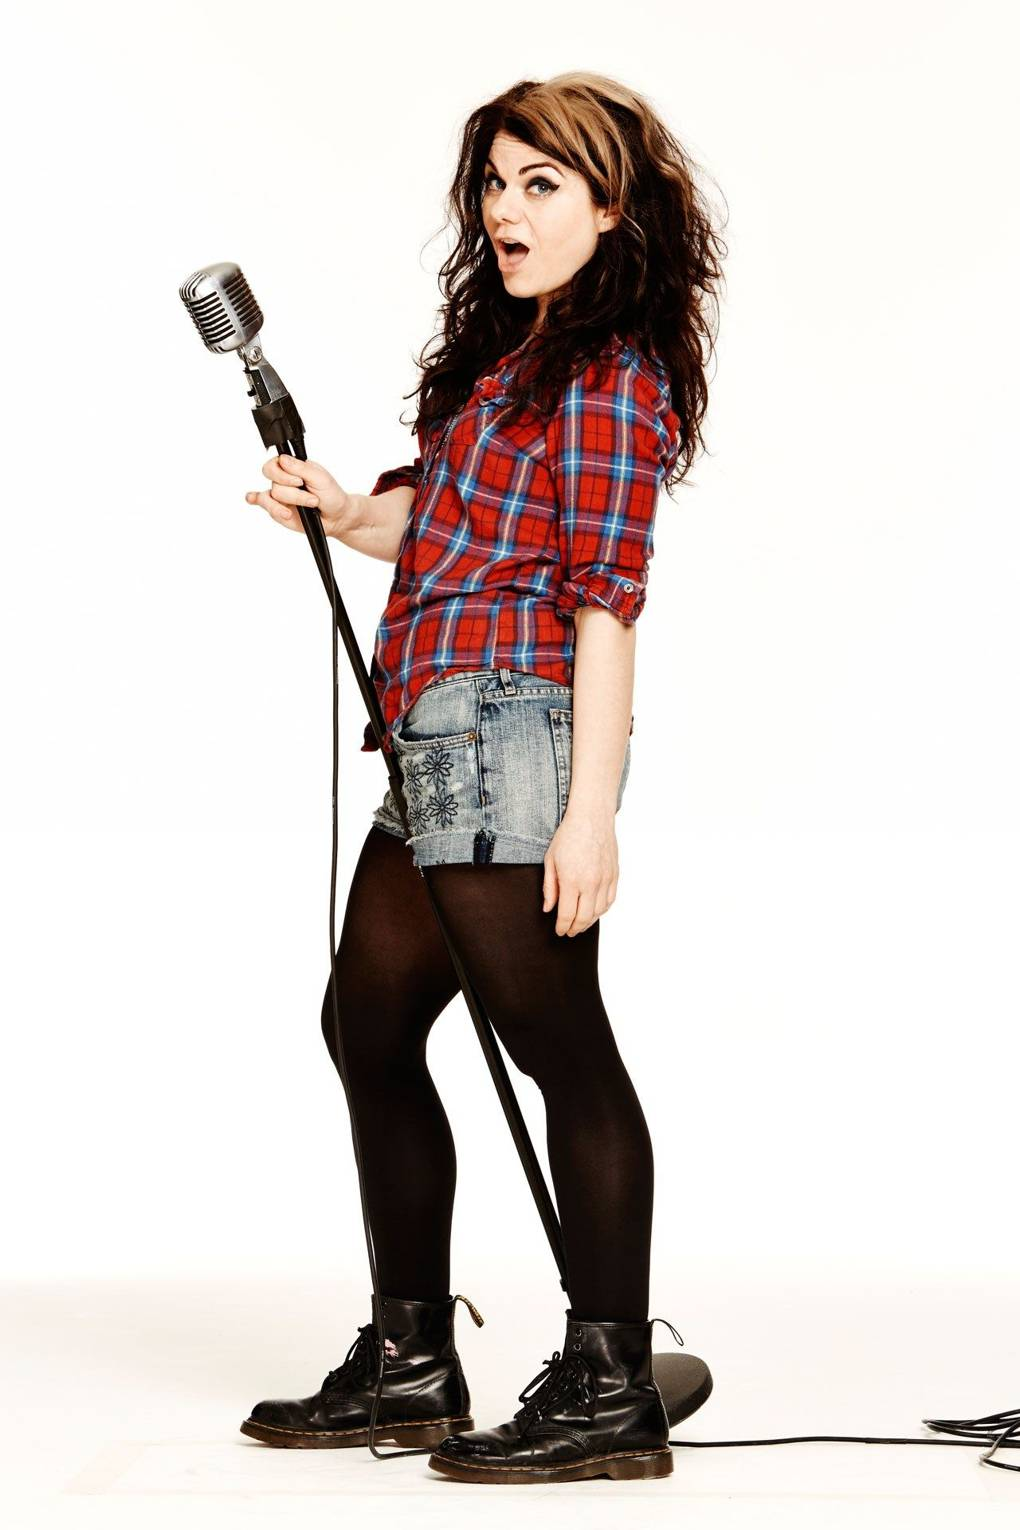 Caitlin Moran On Well Endowed Men Terrible Music Reviews And The 9 11 Of Swimwear British Gq